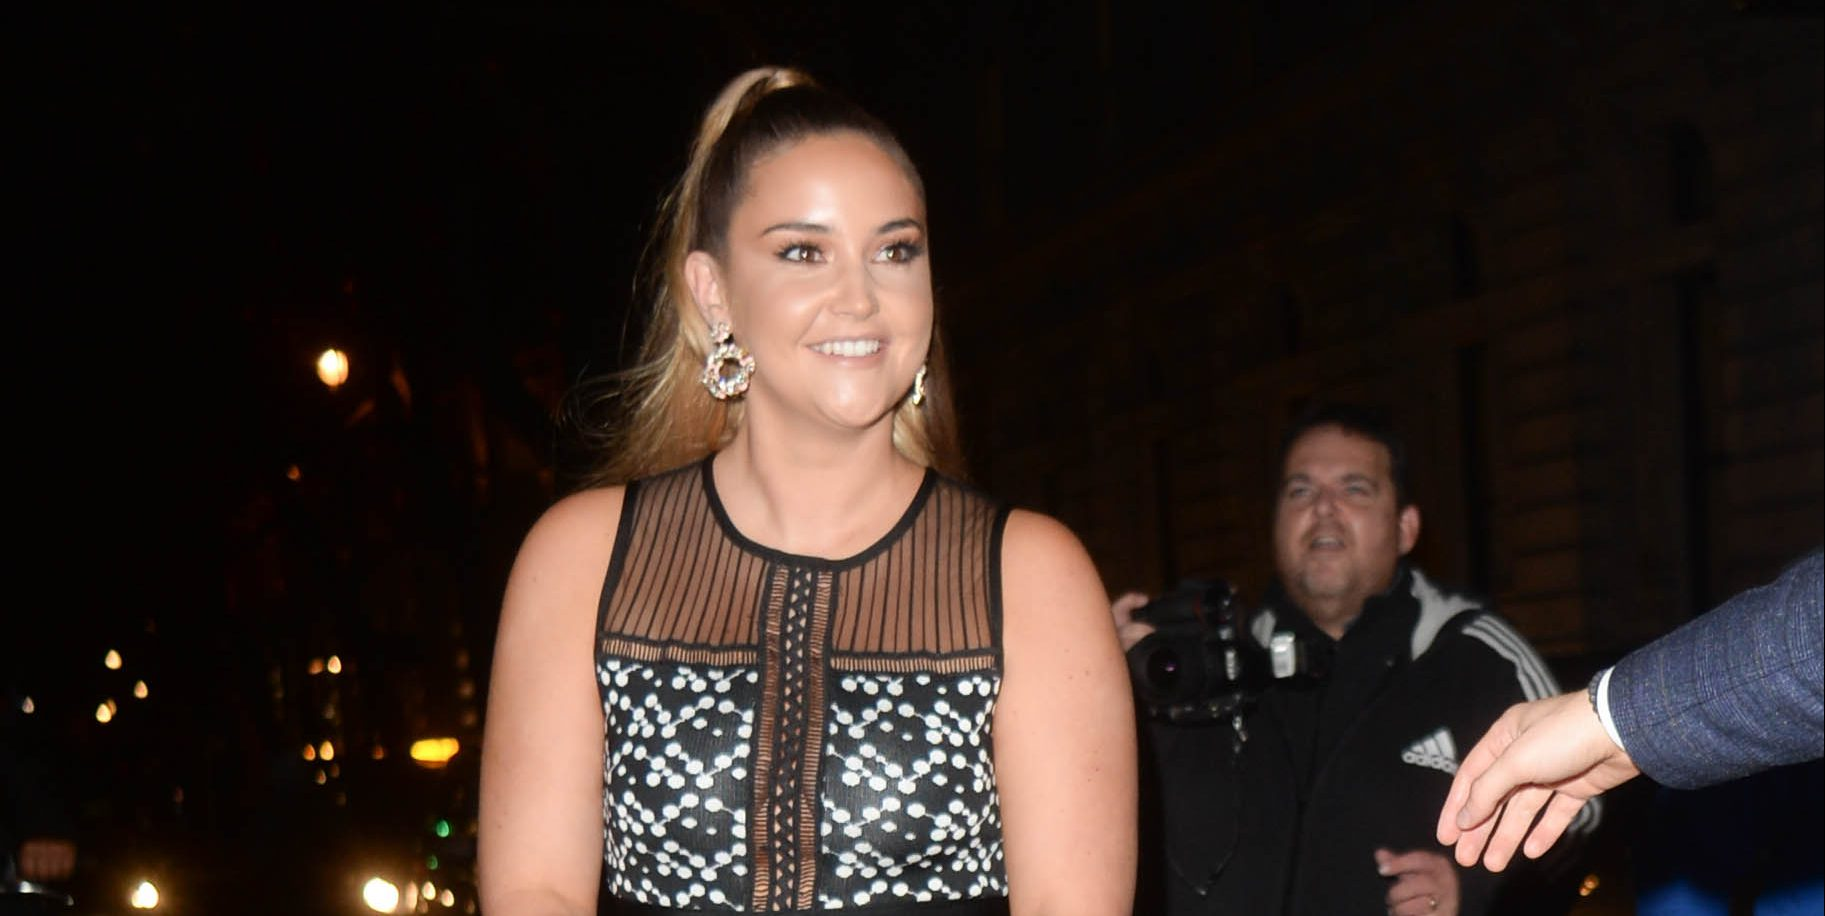 Former EastEnders star Jacqueline Jossa announces clothing range as she collaborates with In The Style